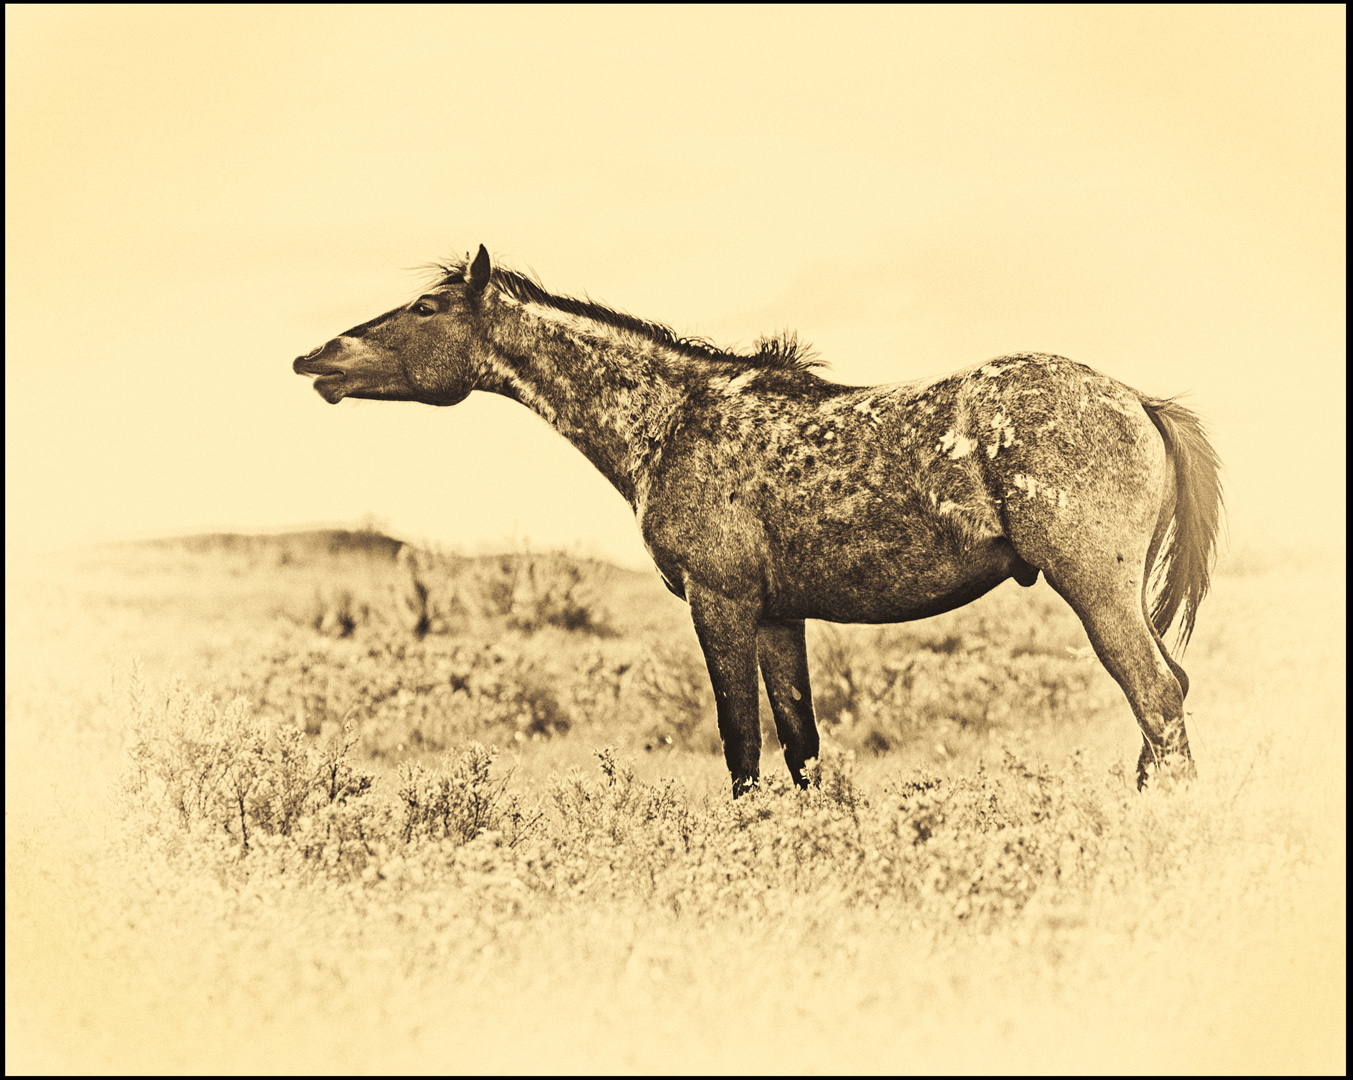 Badlands Staillion, Teddy Roosevelt Herd - Monochrome Print (Open) - Name Withheld Per Request